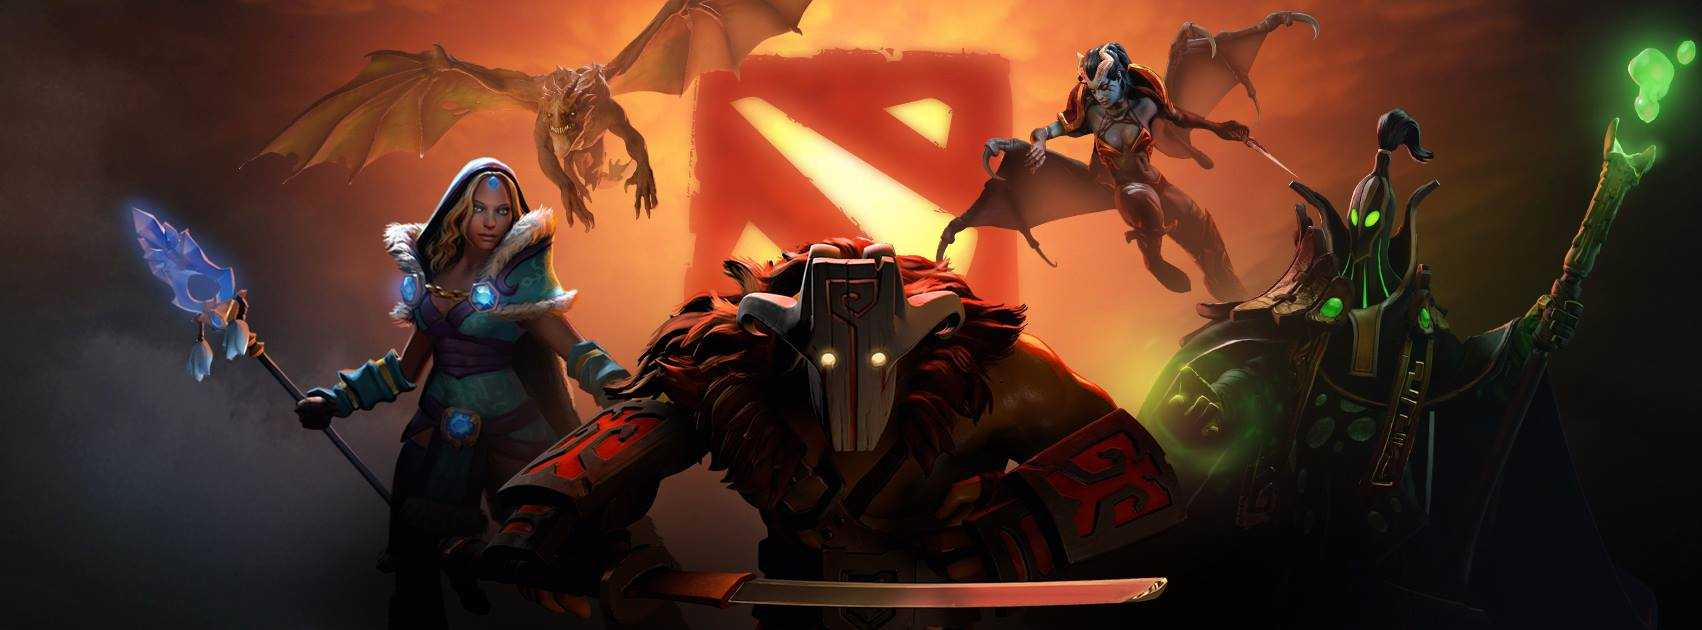 dota 2 update 6 88b nerfs timbersaw death prophet and improves